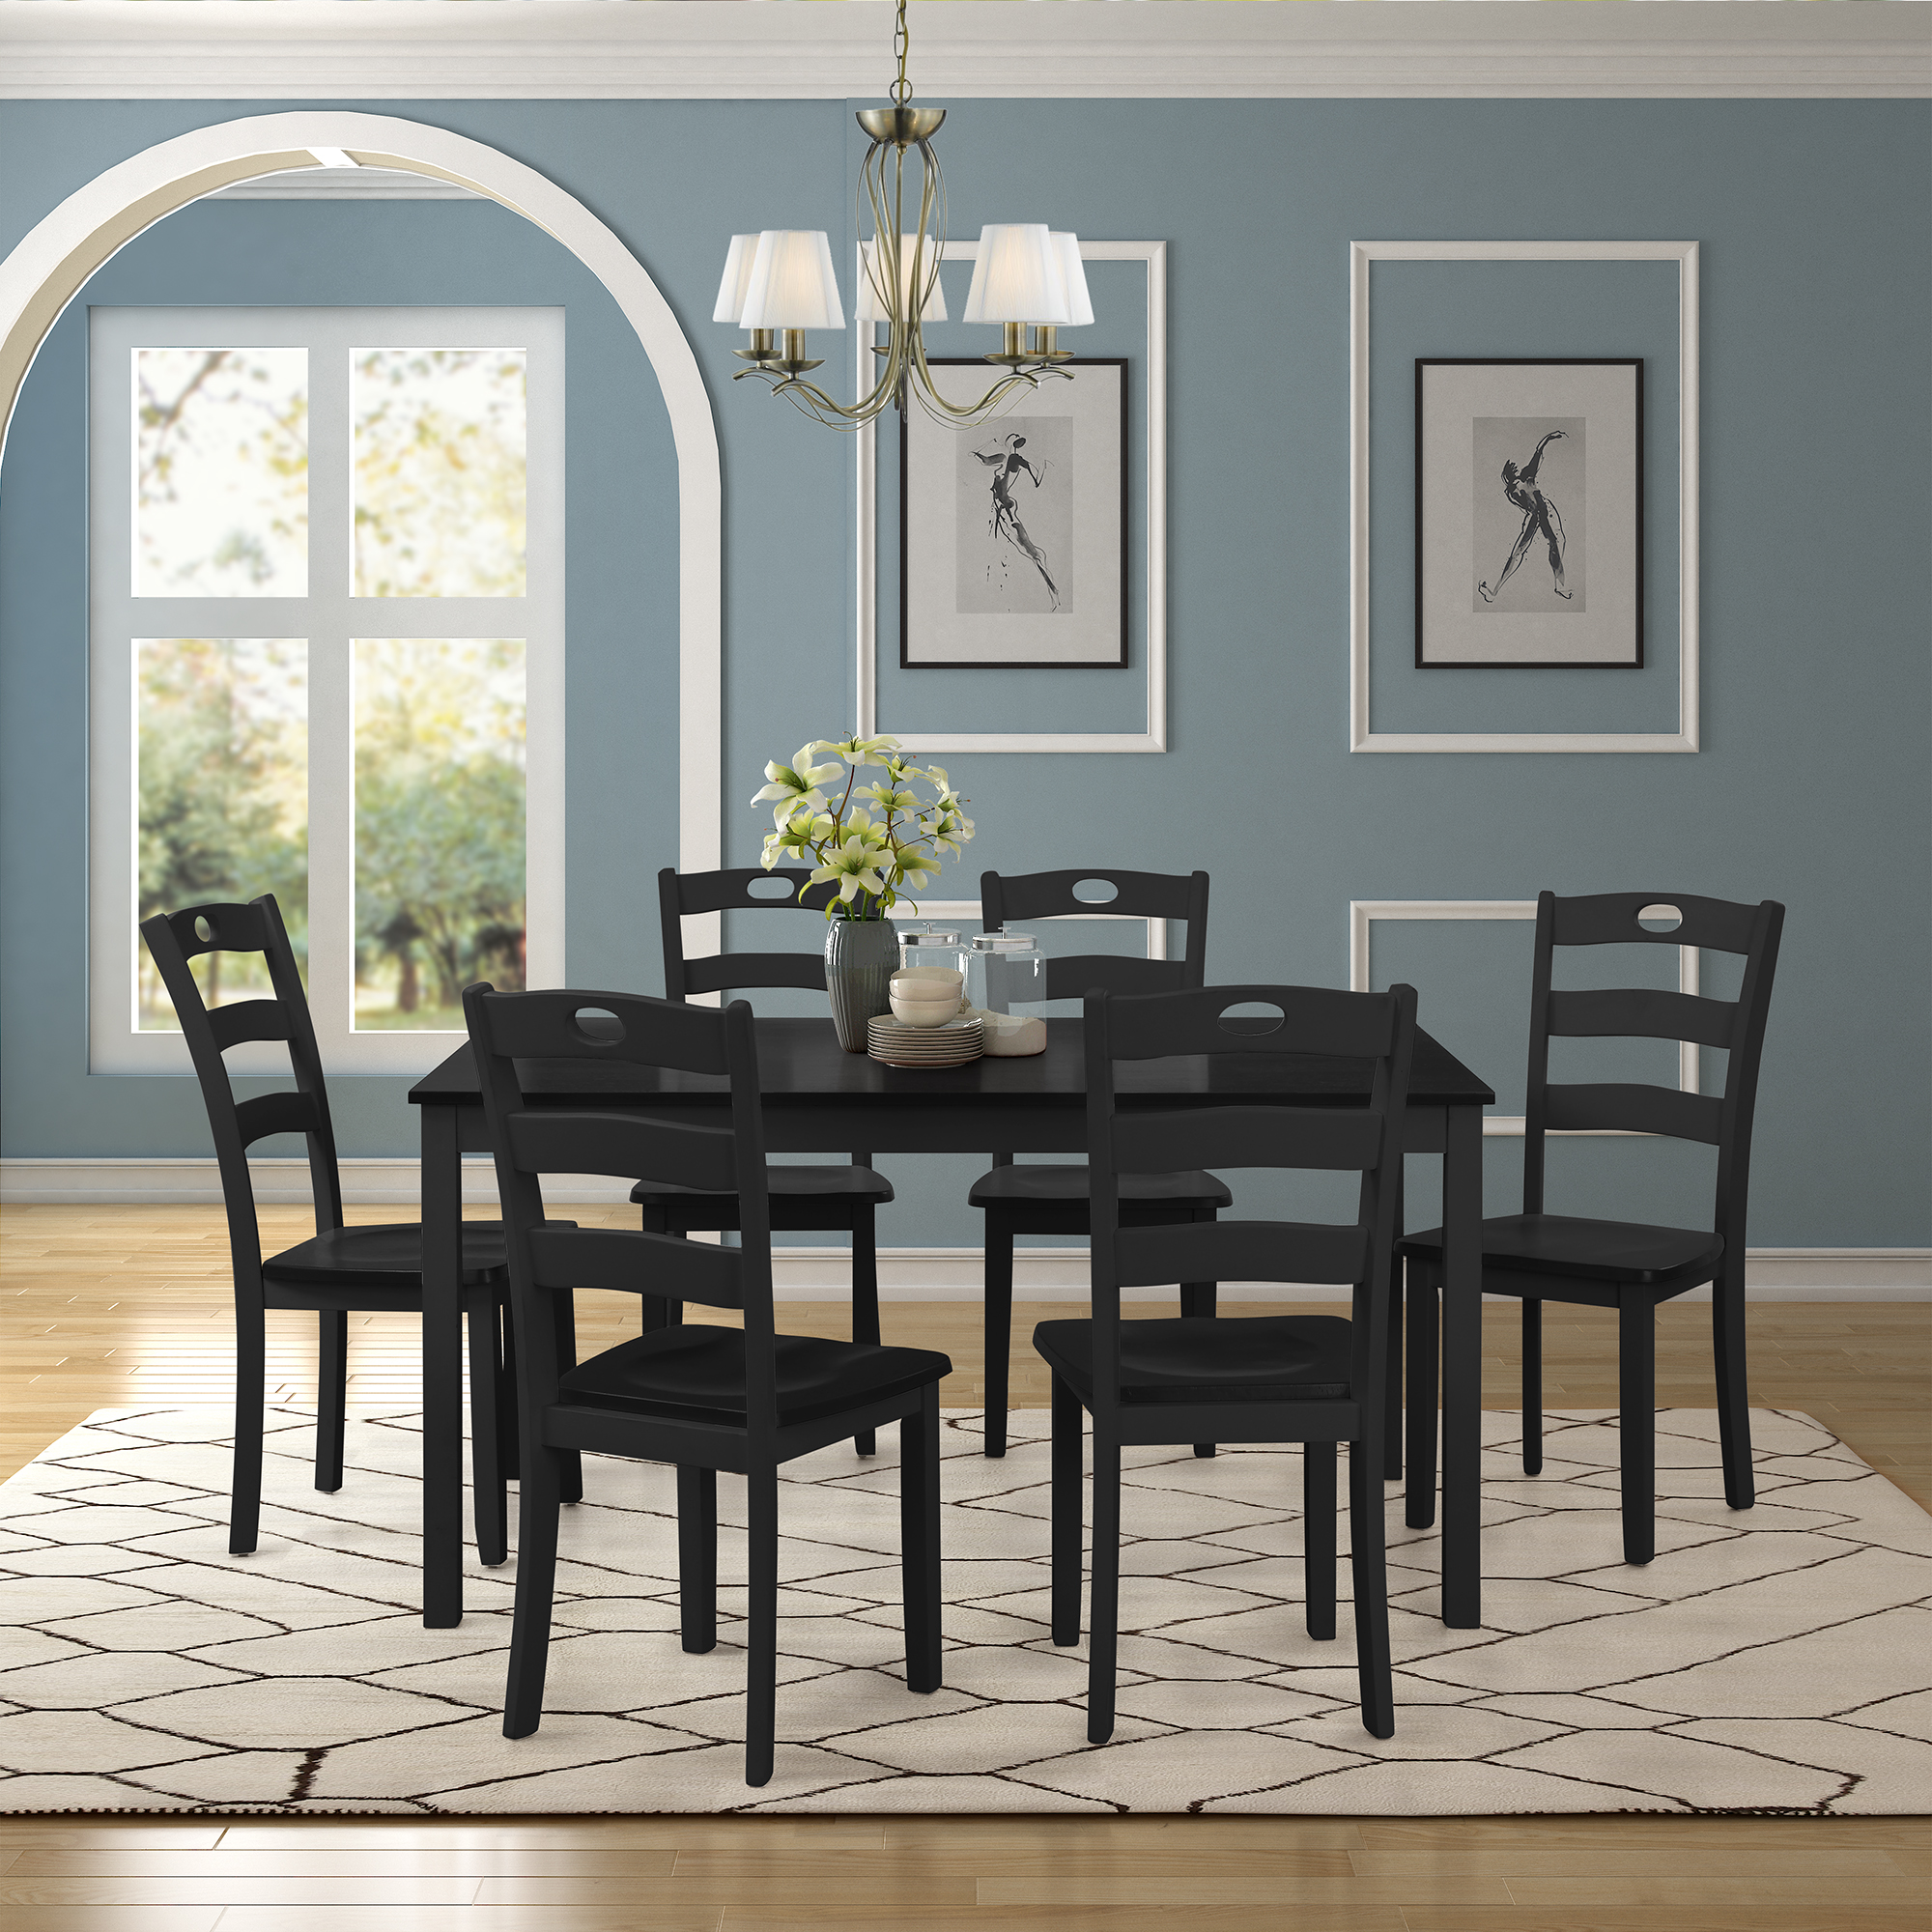 Black Dining Table Set for 6, Modern 7 Piece Dining Room Table Sets with Chairs, Heavy Duty ...